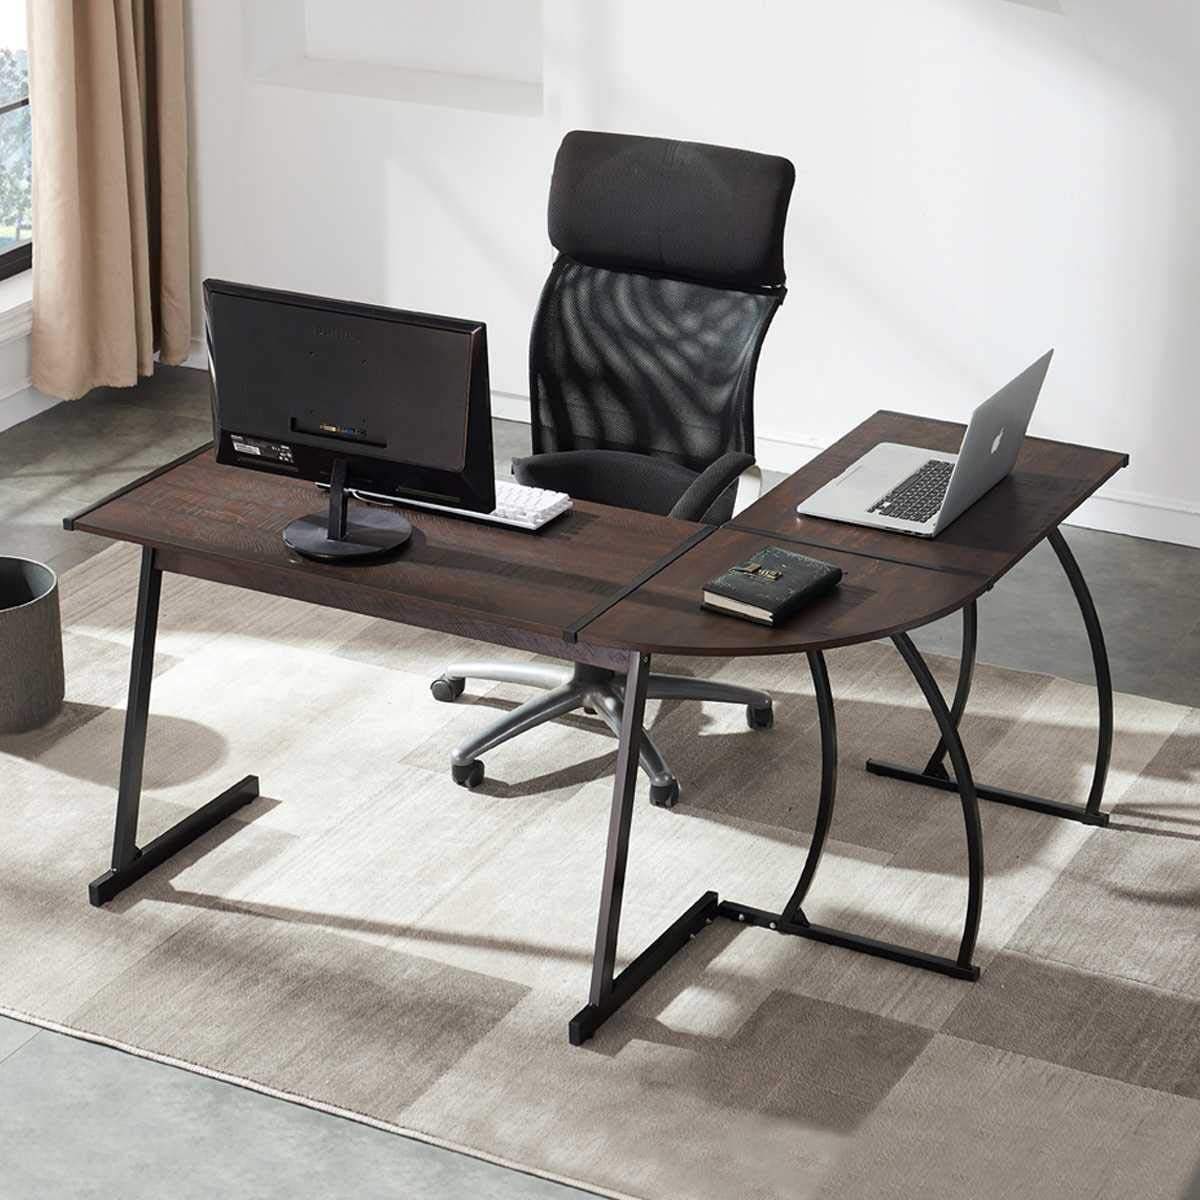 UnaFurni L Shaped Desk, L Corner Computer Desk for Workstation Home Office, Espresso